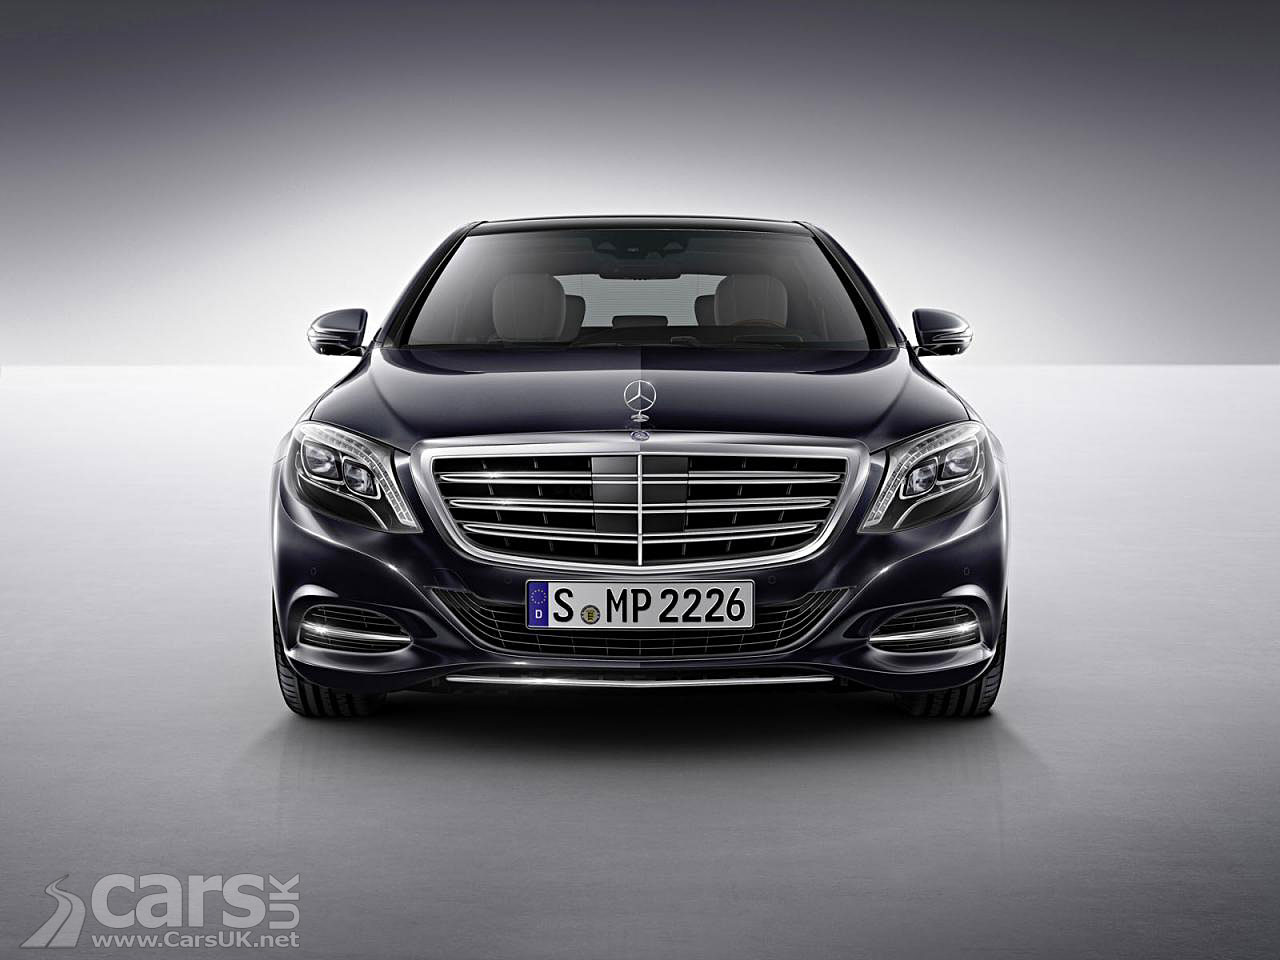 2014 mercedes s600 pictures cars uk for Mercedes benz s600 2014